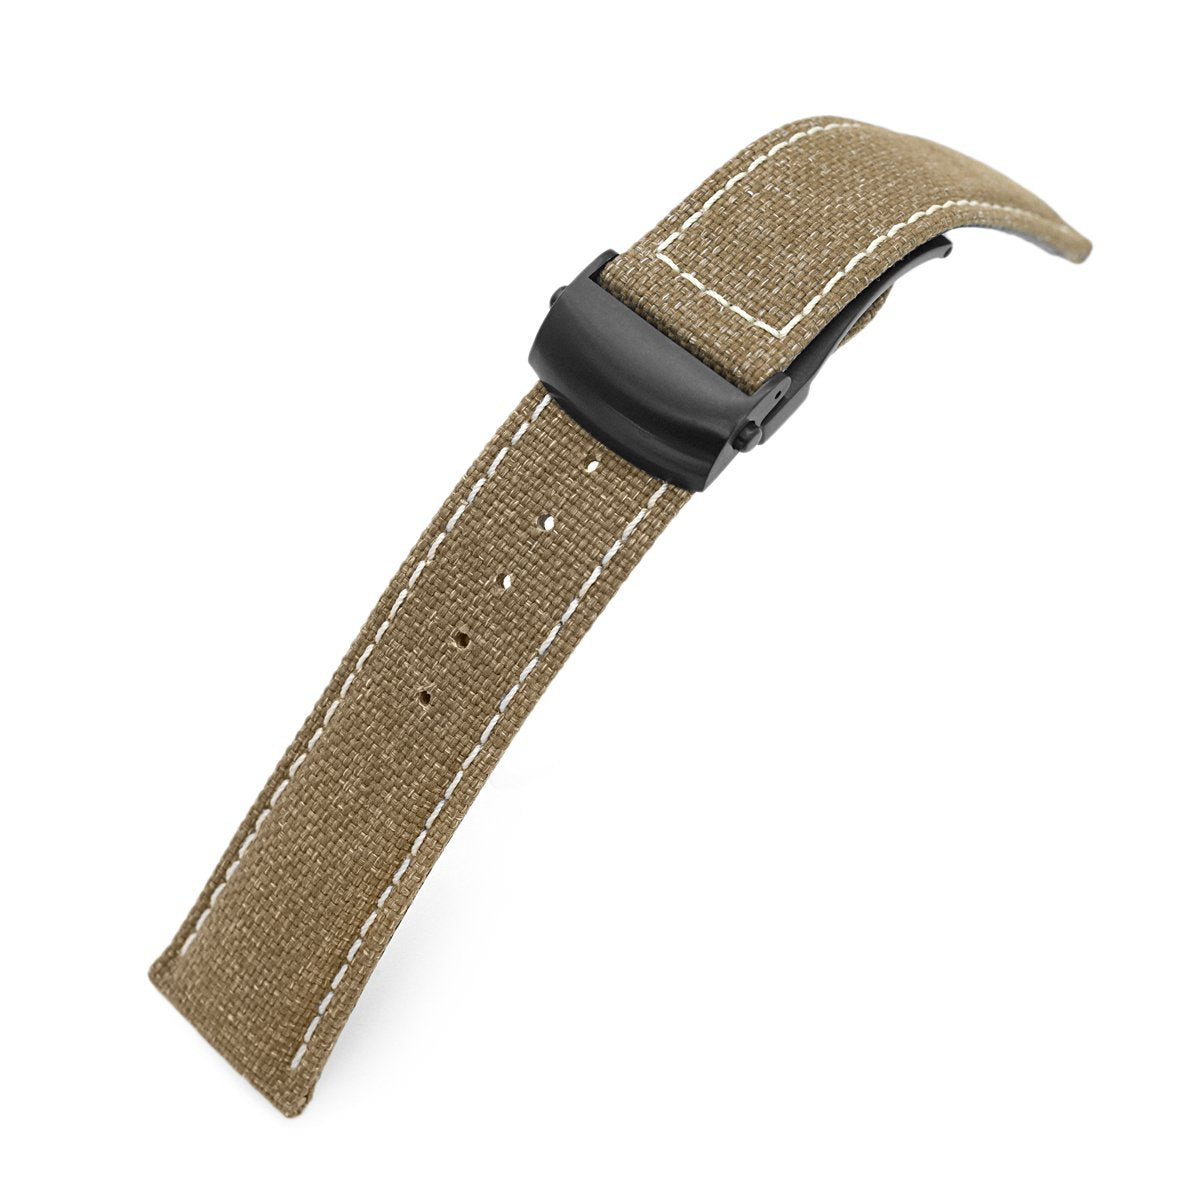 20mm or 22mm Khaki Canvas Watch Band PVD Black Roller Deployant Buckle Beige Stitching Strapcode Watch Bands